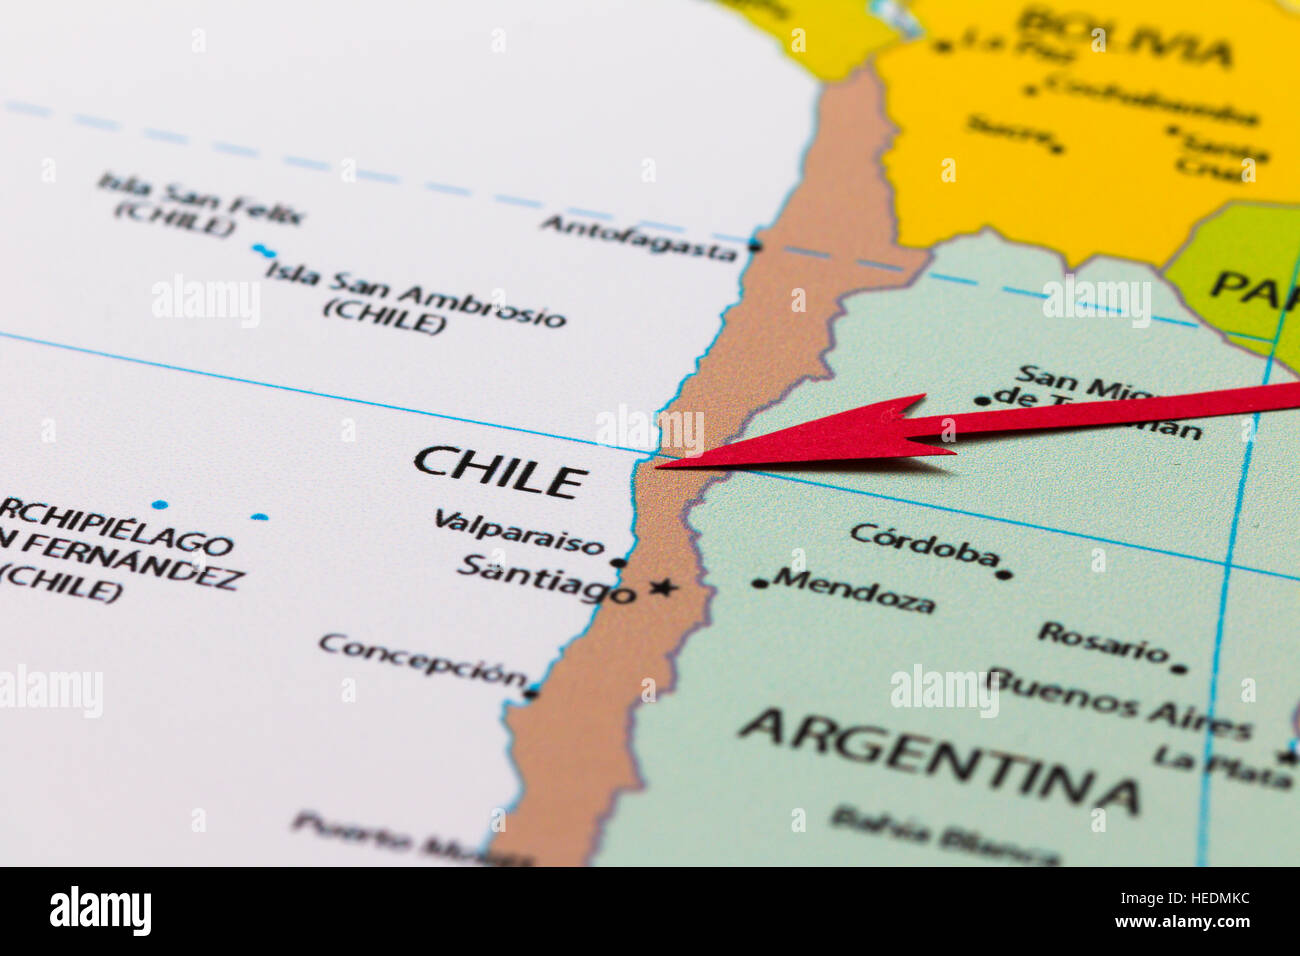 Chile Map Stock Photos & Chile Map Stock Images - Alamy on